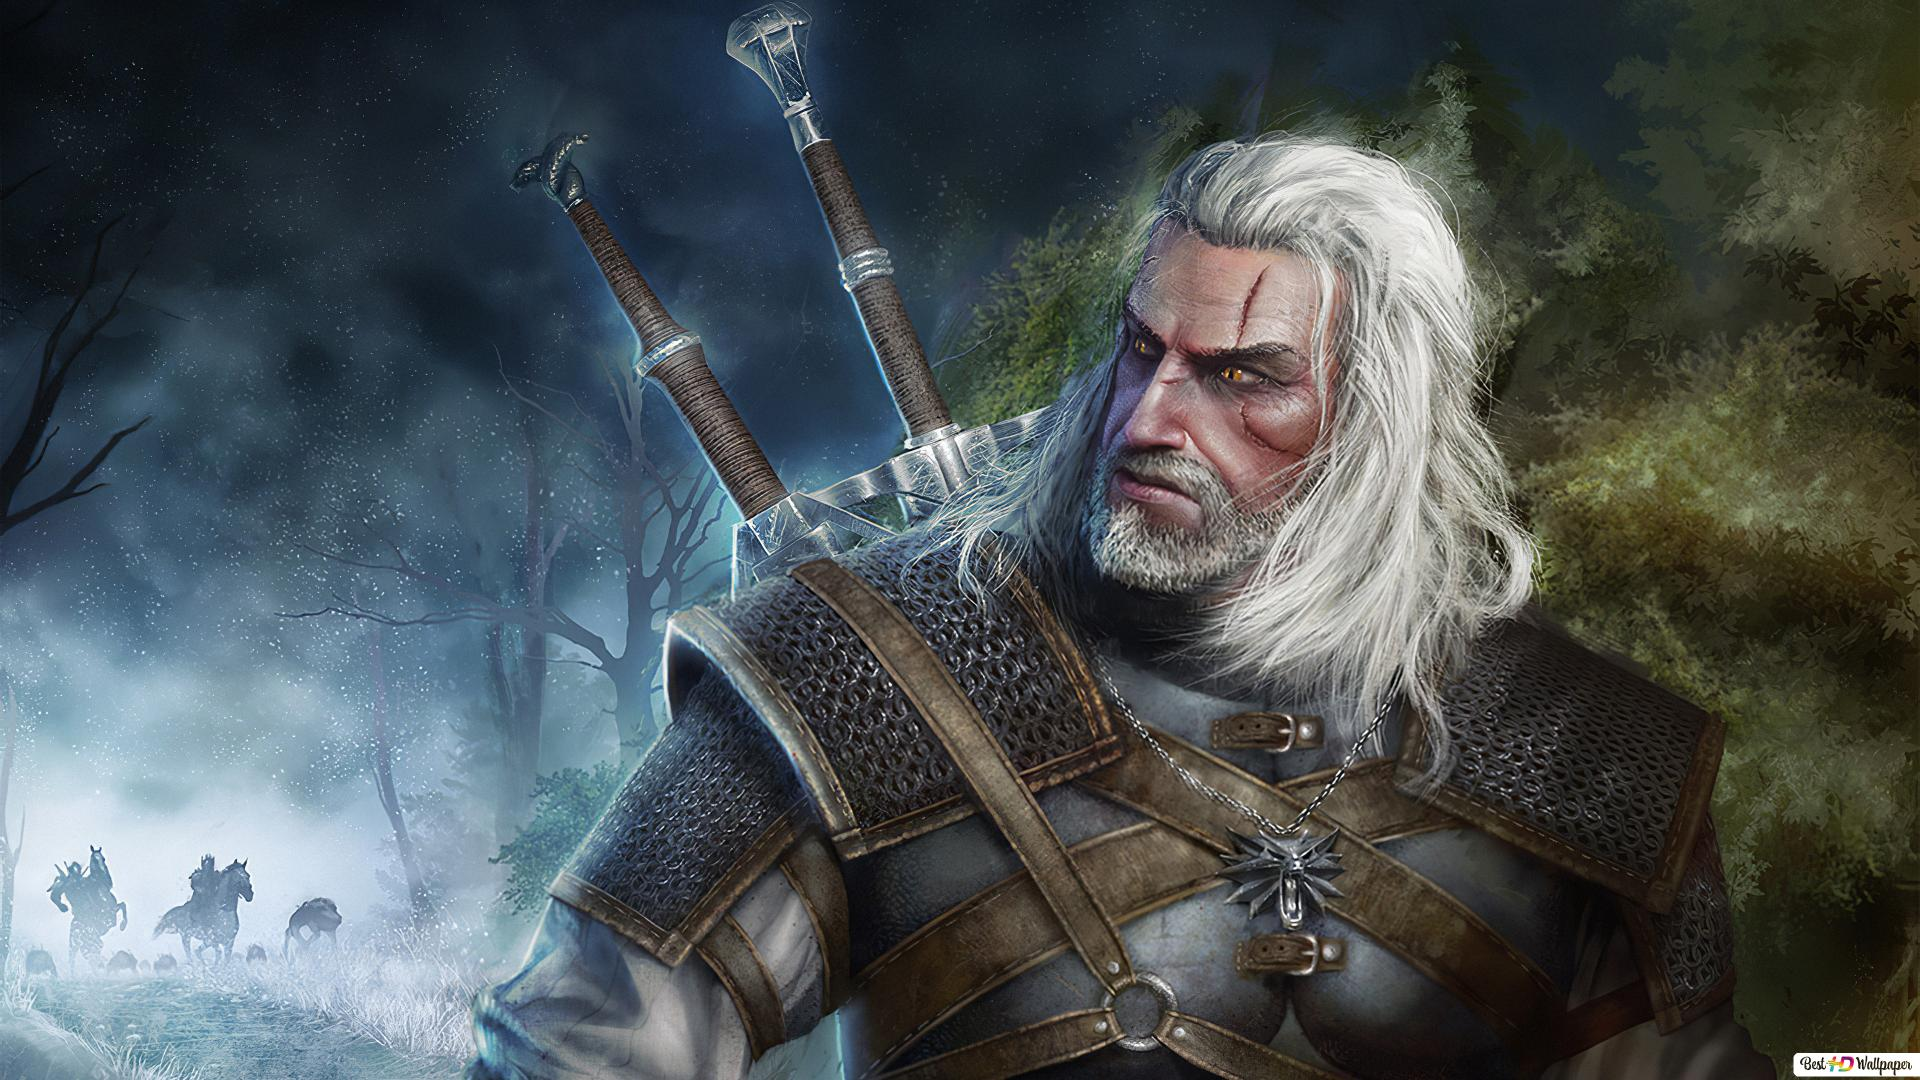 Geralt Of Rivia The Witcher 3 Hd Wallpaper Download